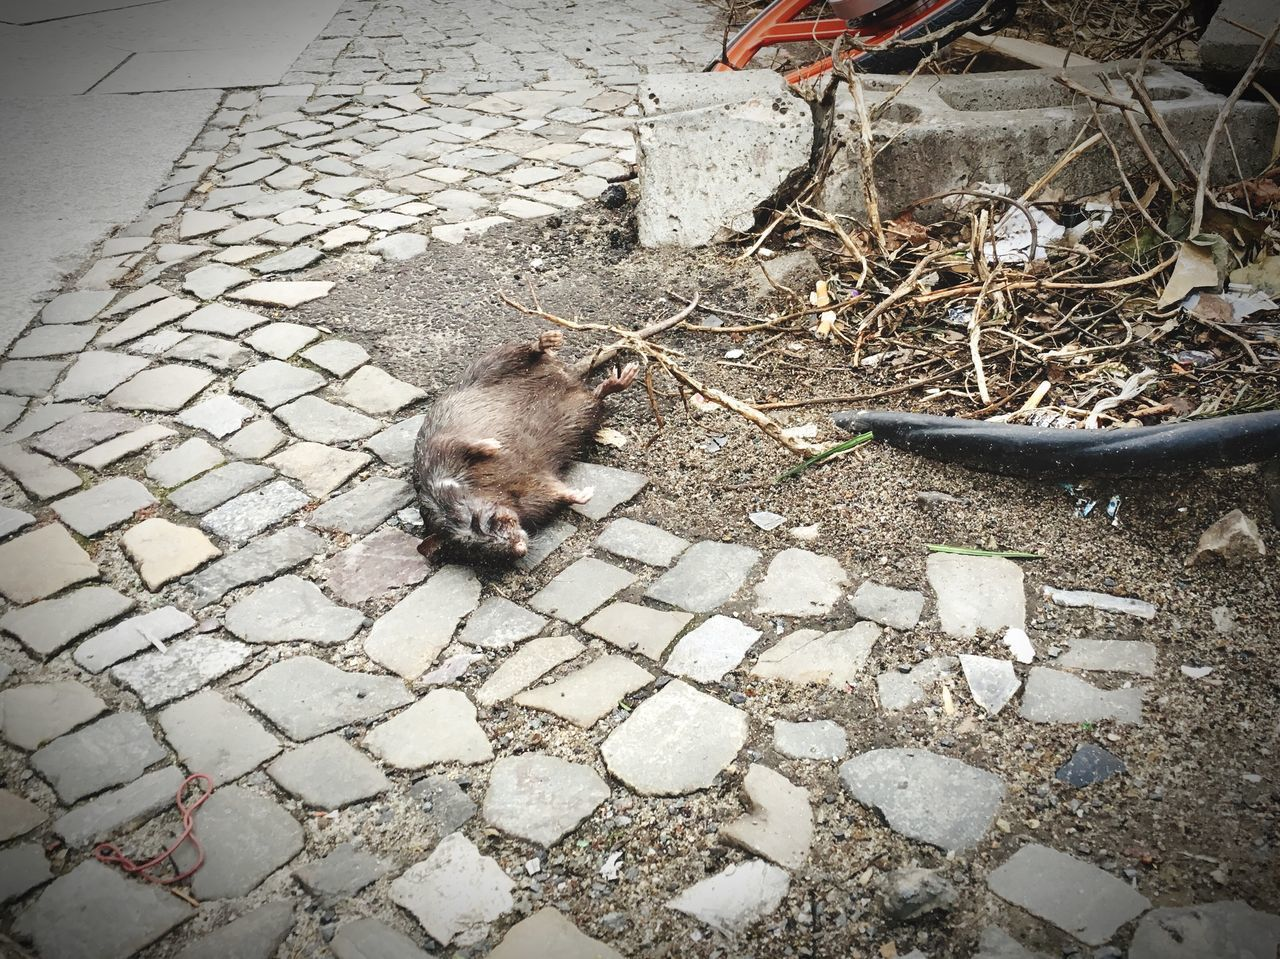 HIGH ANGLE VIEW OF CAT ON FOOTPATH